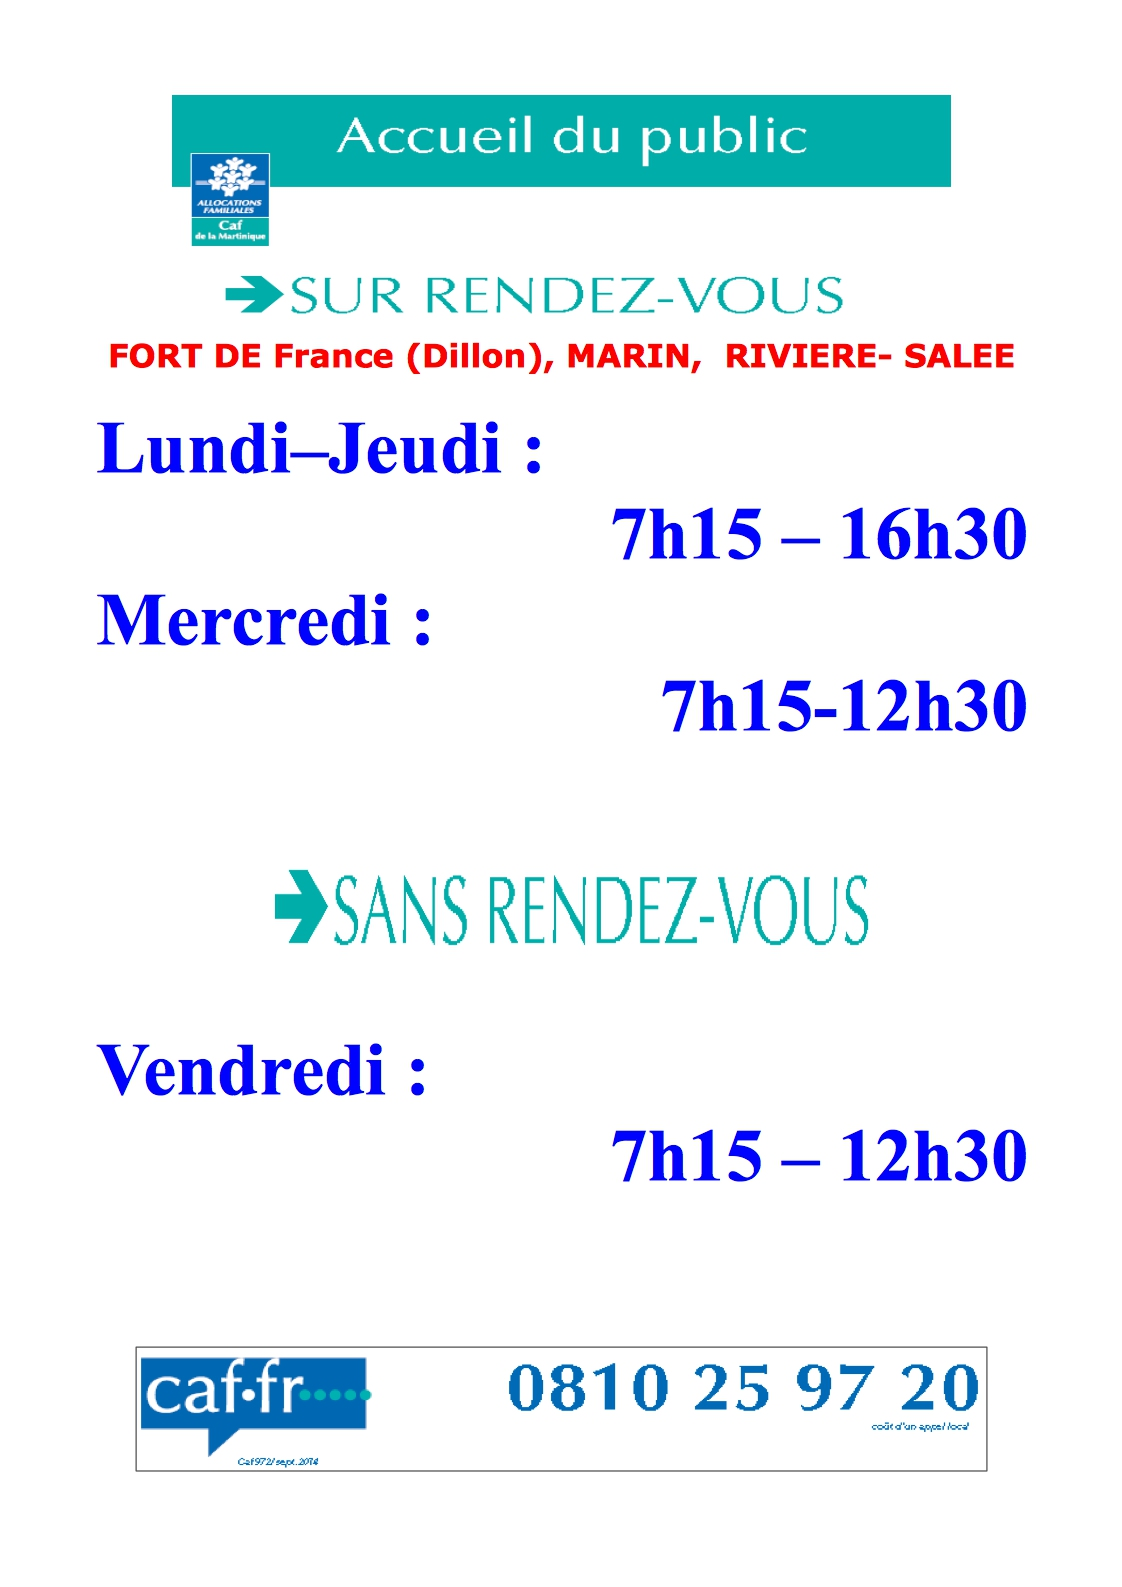 Contact Caf Horaire